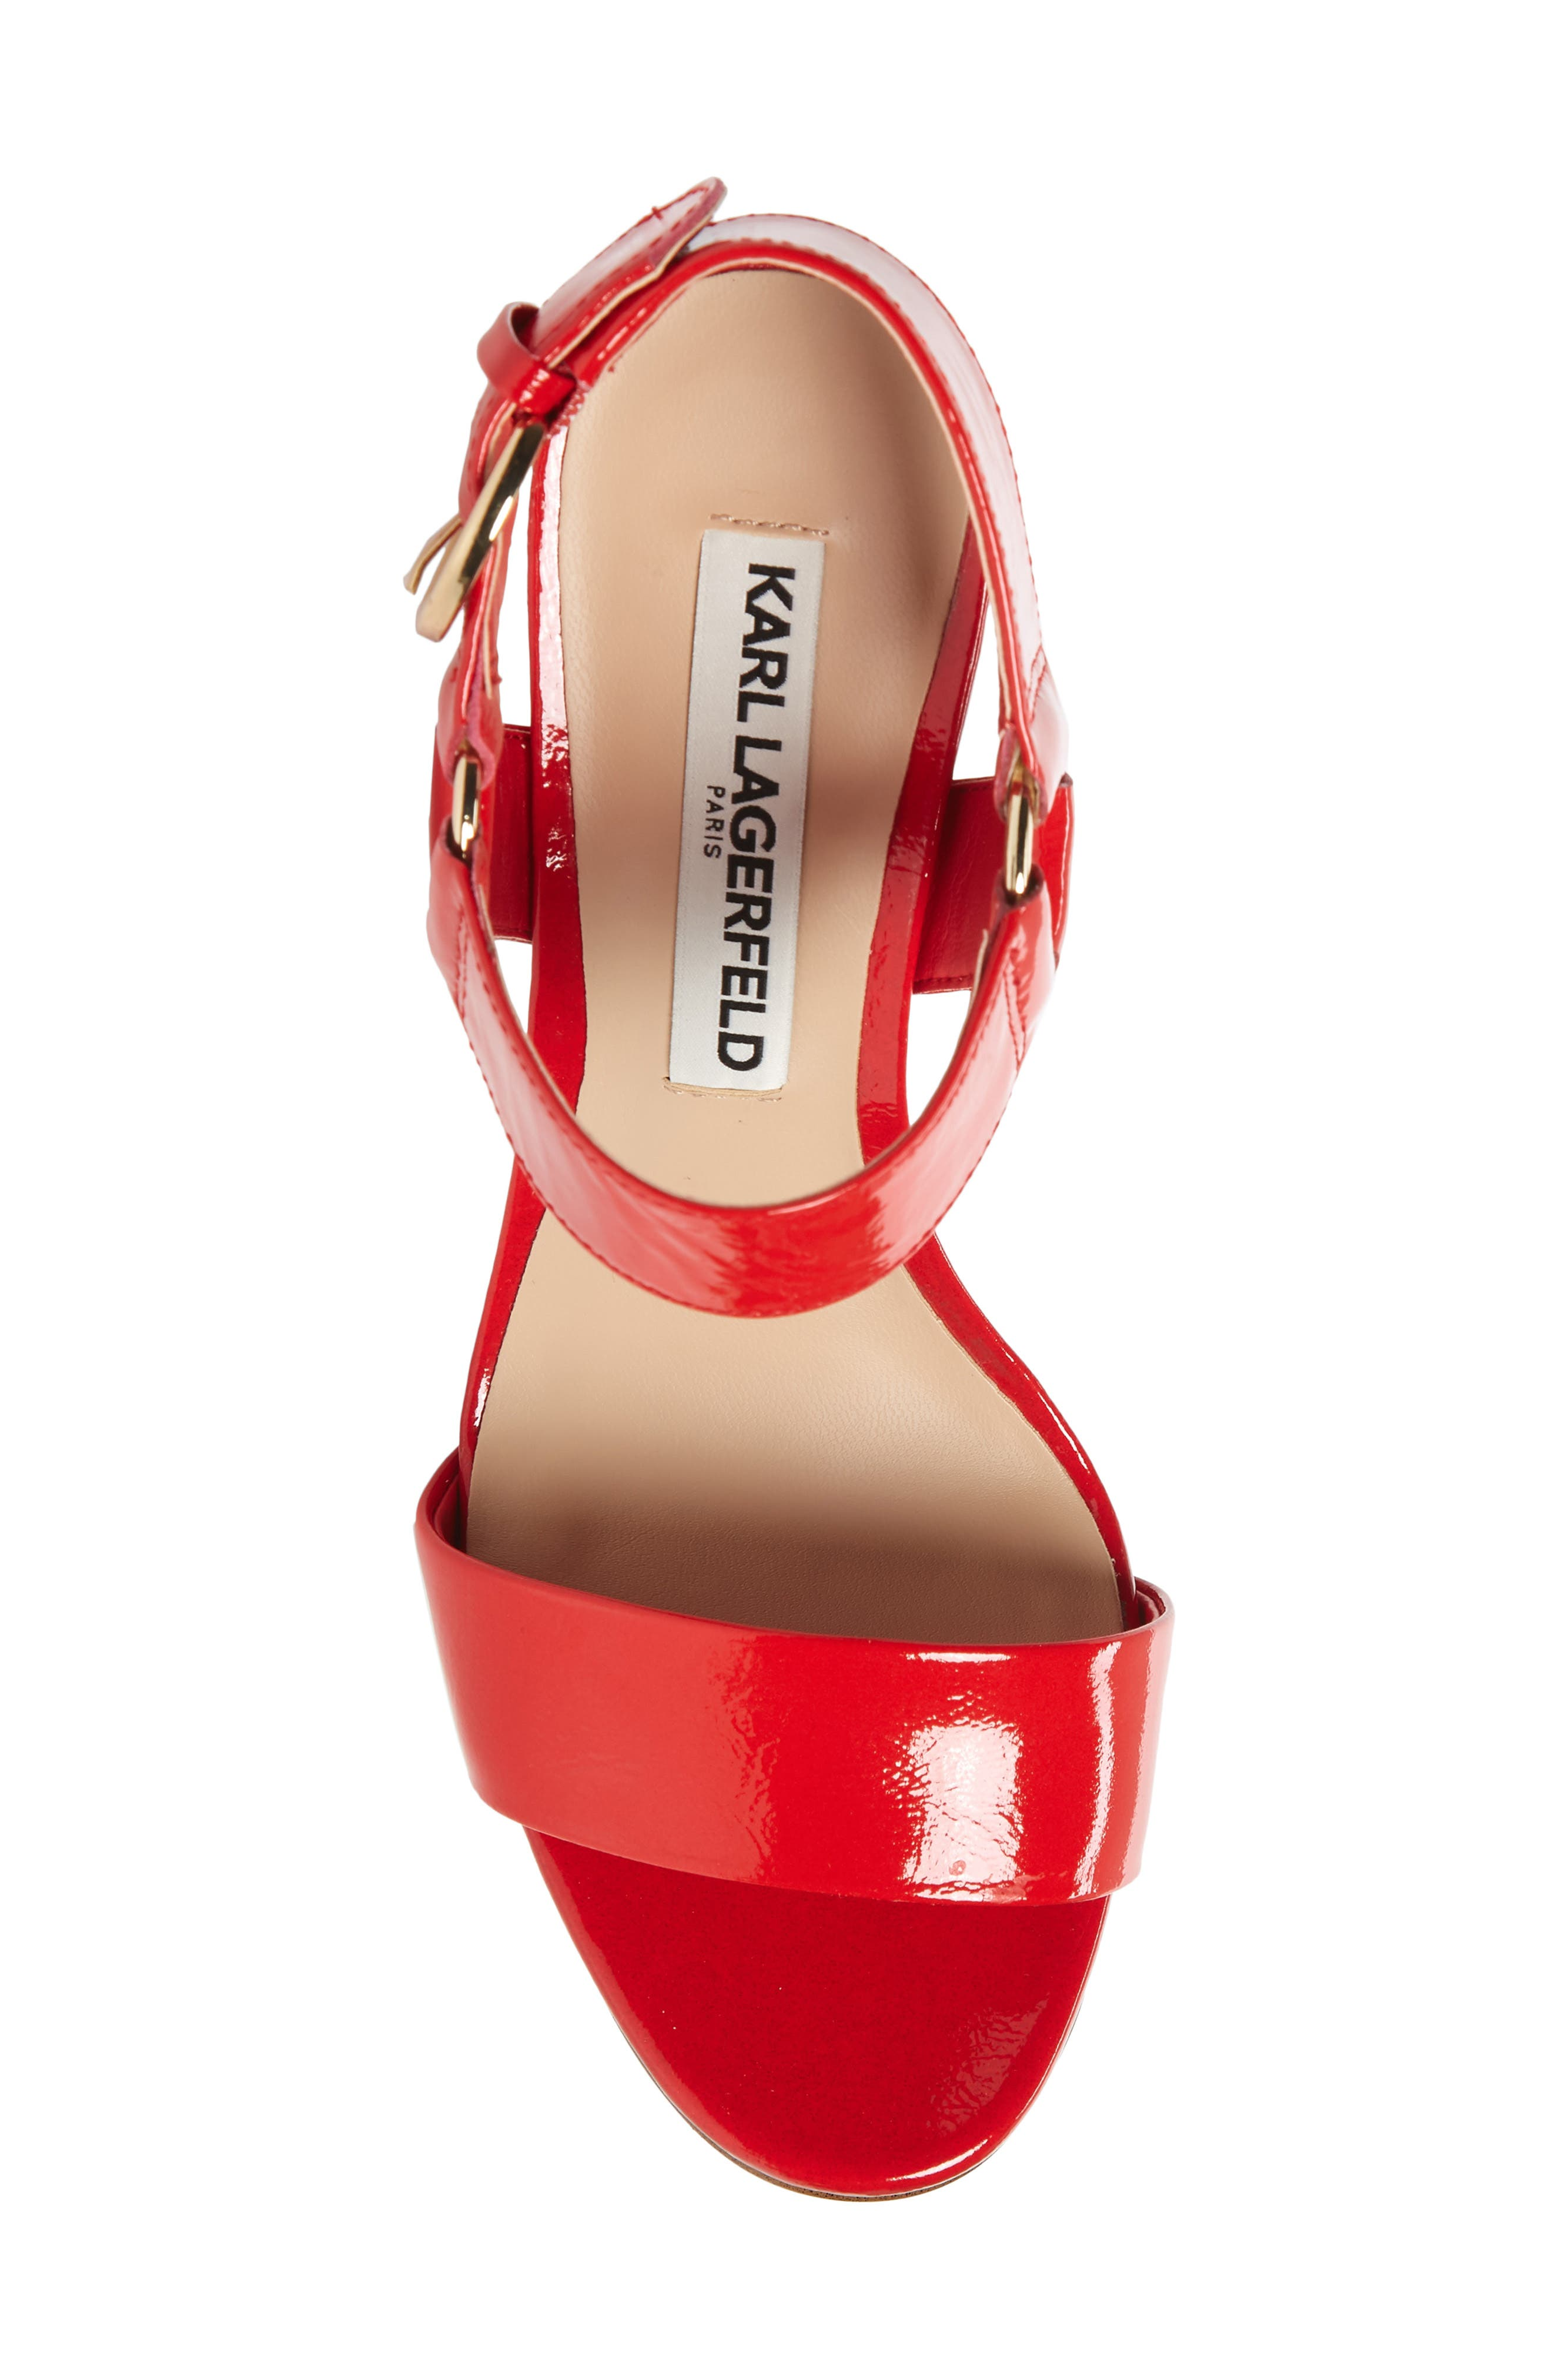 Cieone Sandal,                             Alternate thumbnail 5, color,                             RED PATENT